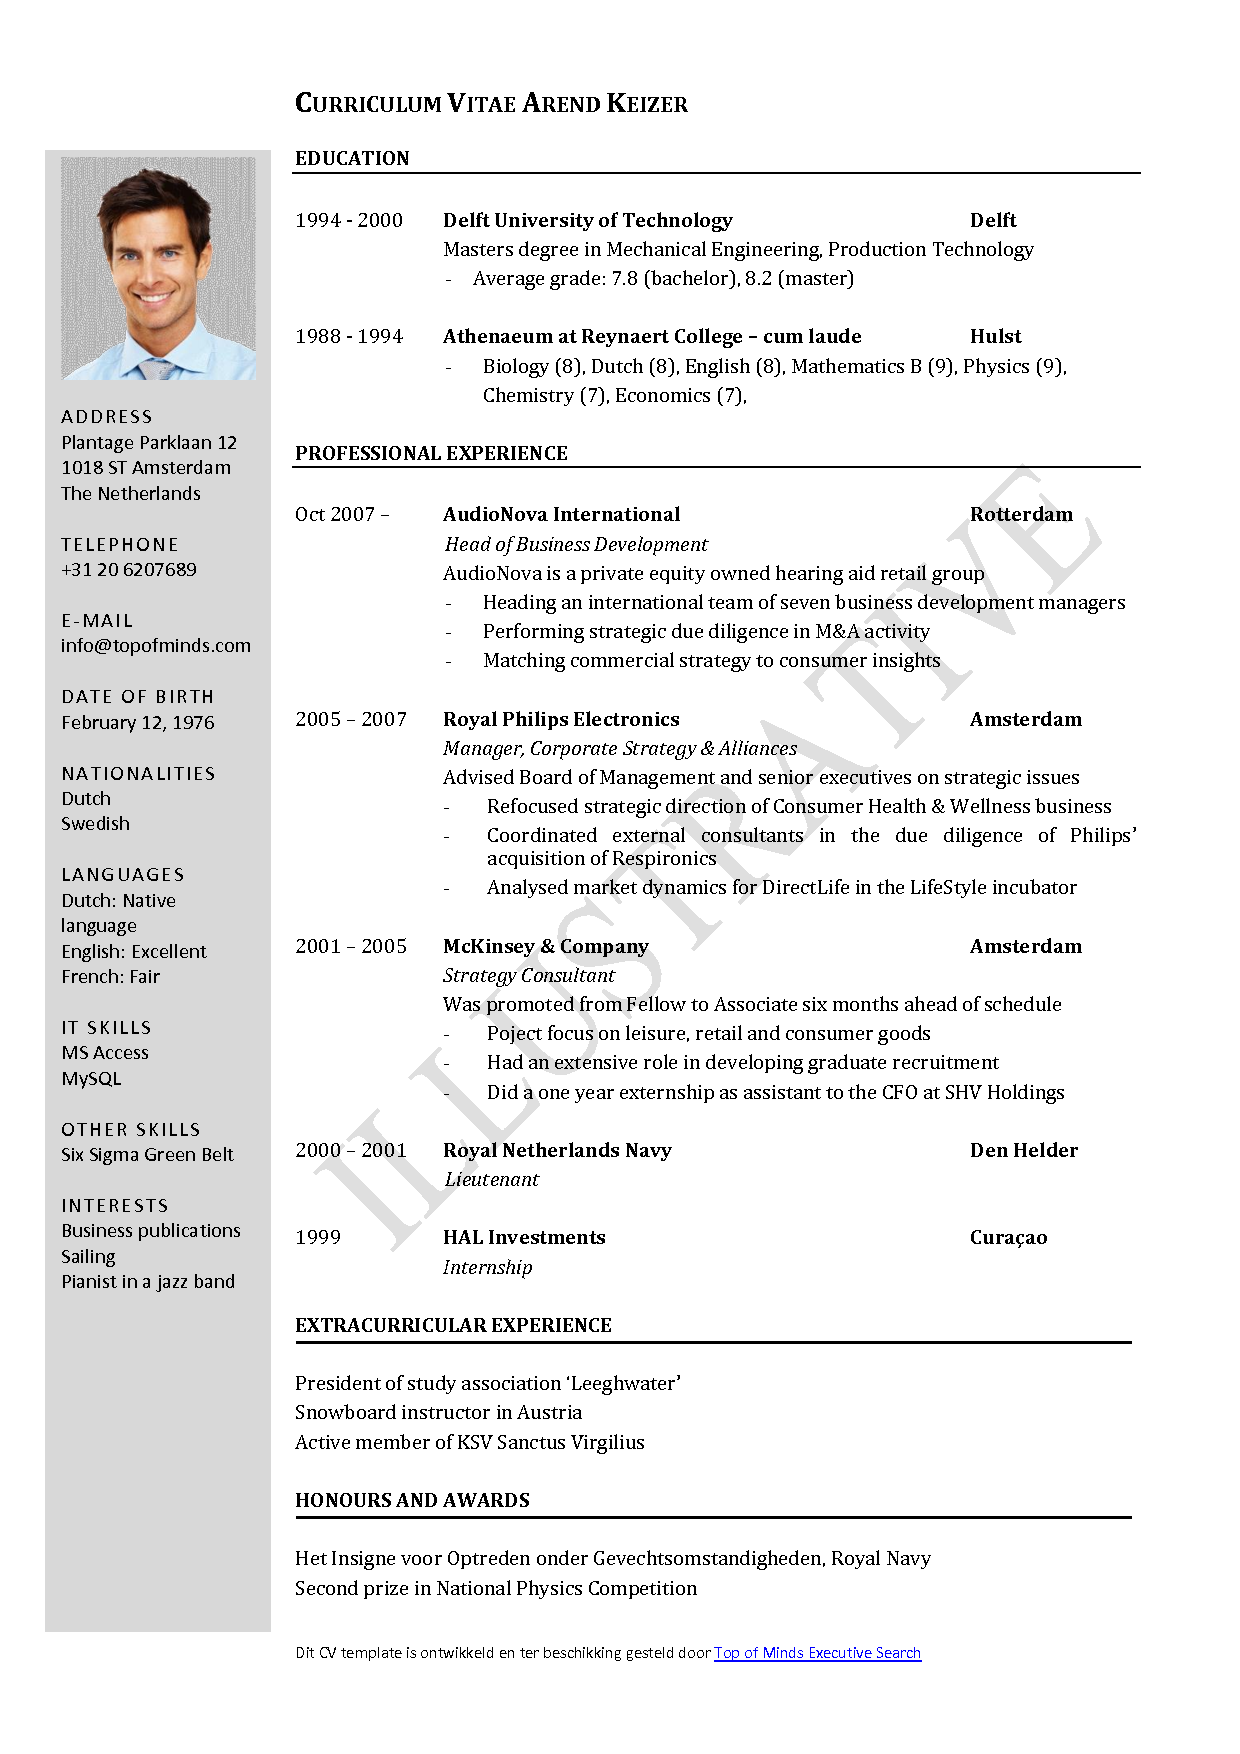 Free Curriculum Vitae Template Word Download CV template – Free Sample of Resume in Word Format